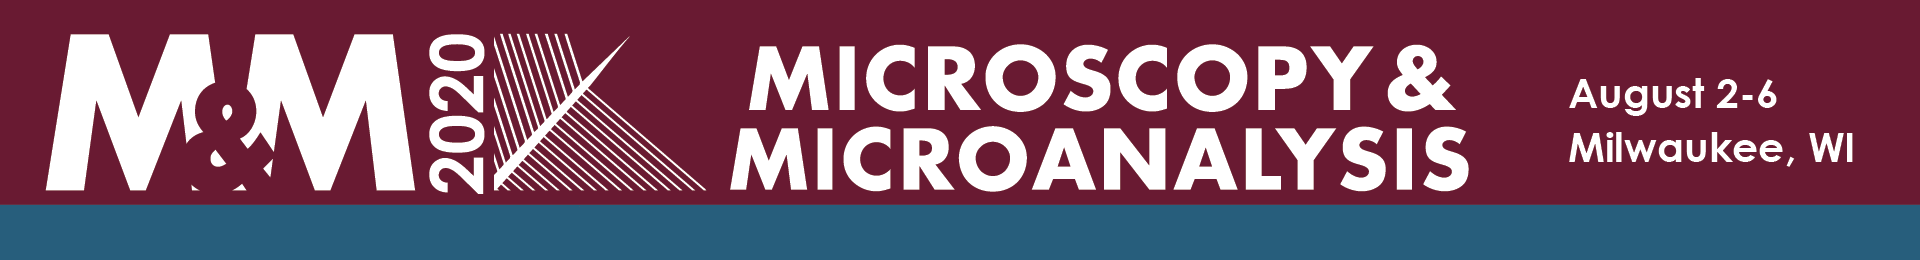 Microscopy & Microanalysis (M&M) 2020 Event Banner